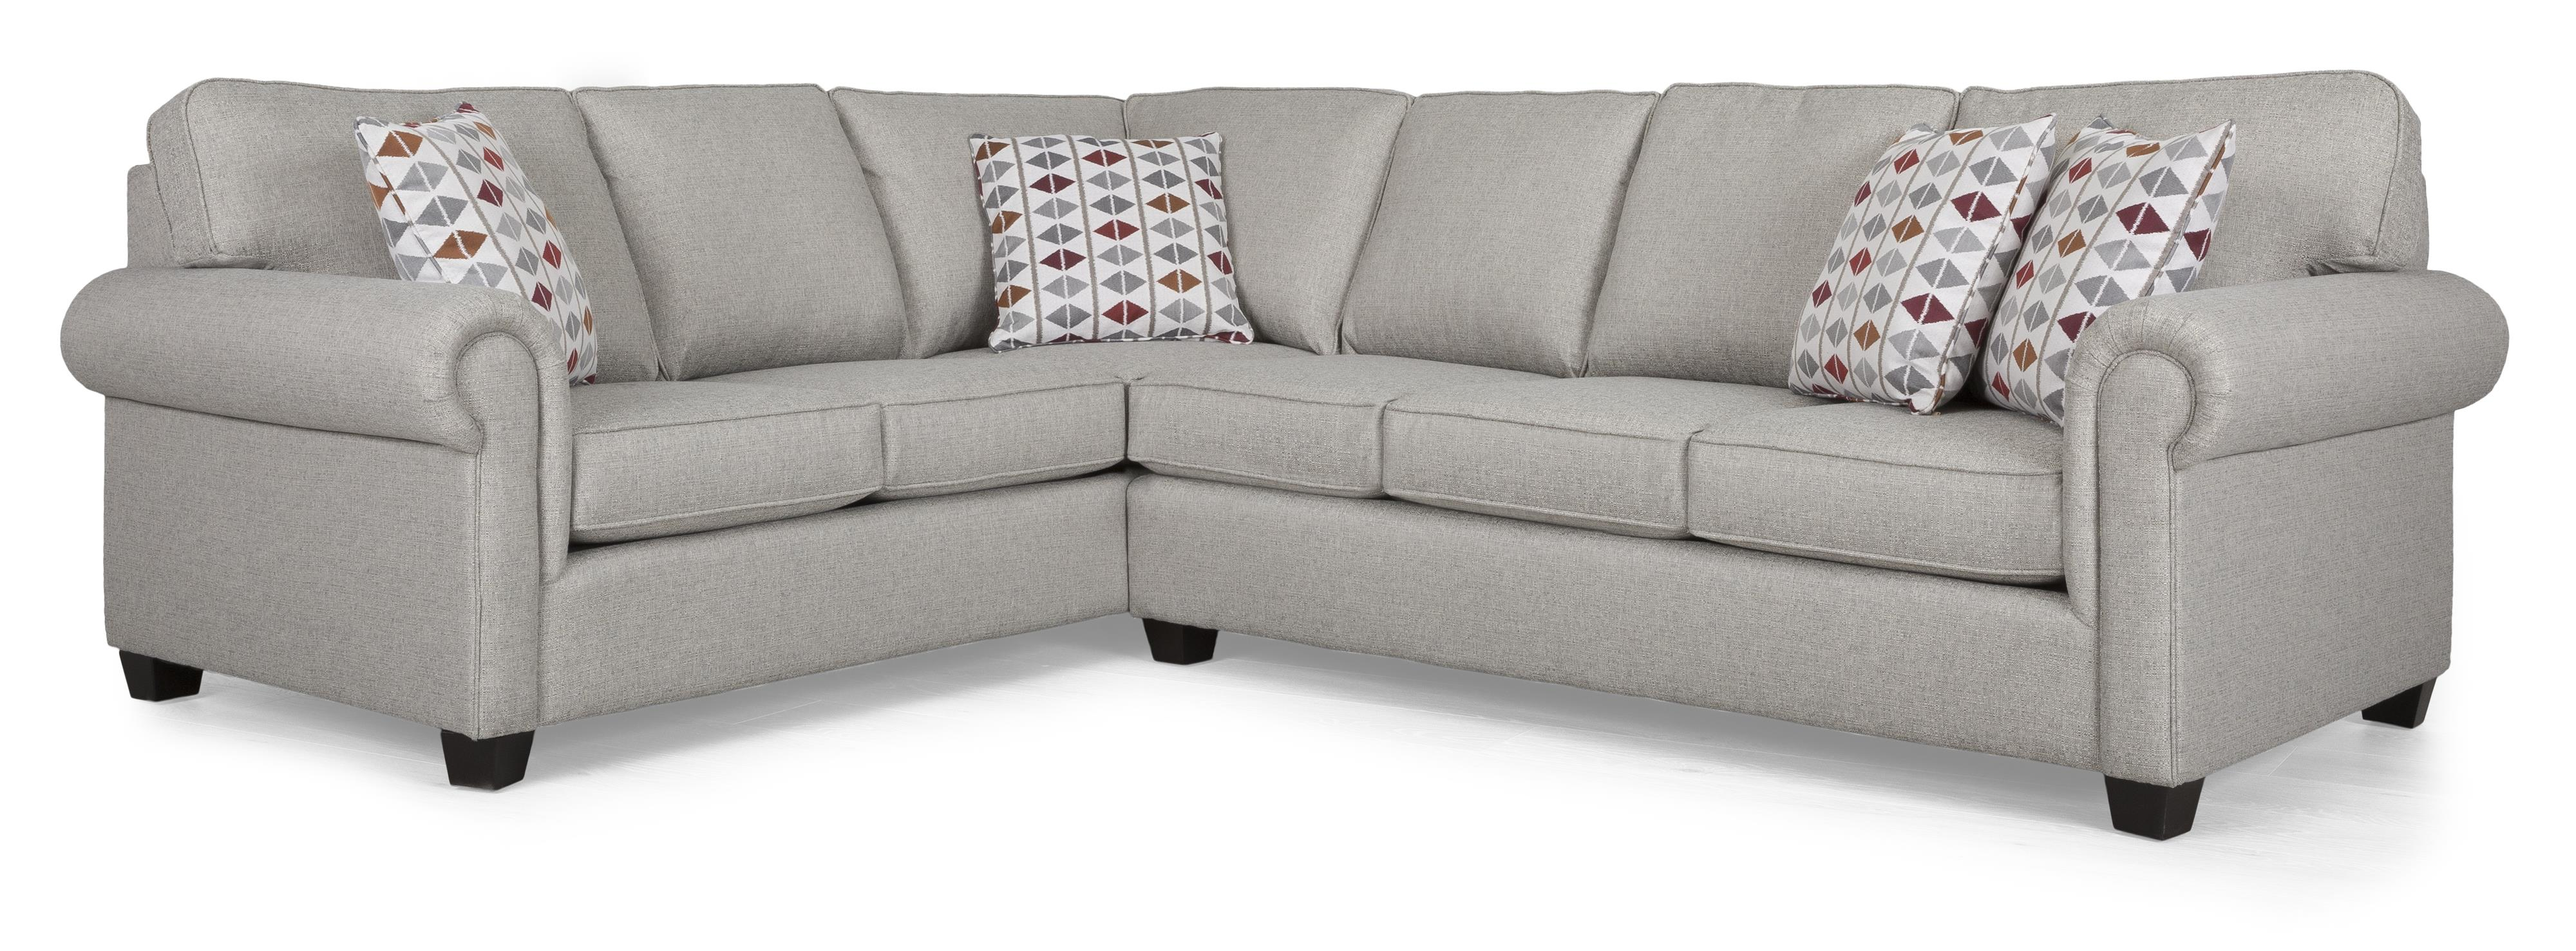 2006 Sectional Sectional Sofa Group by Decor-Rest at Reid's Furniture